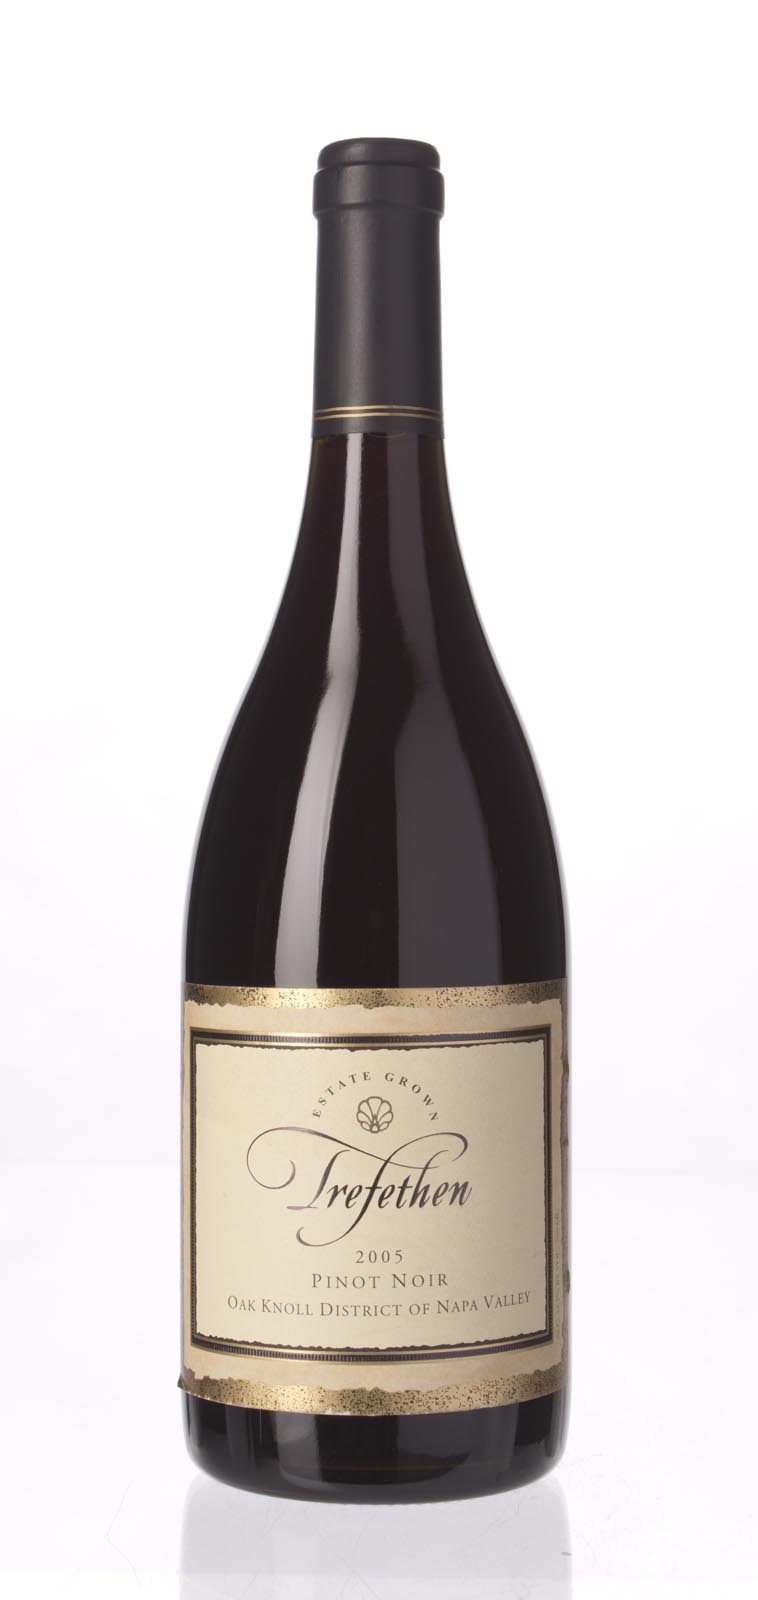 Trefethen Pinot Noir Oak Knoll 2005, 750ml () from The BPW - Merchants of rare and fine wines.